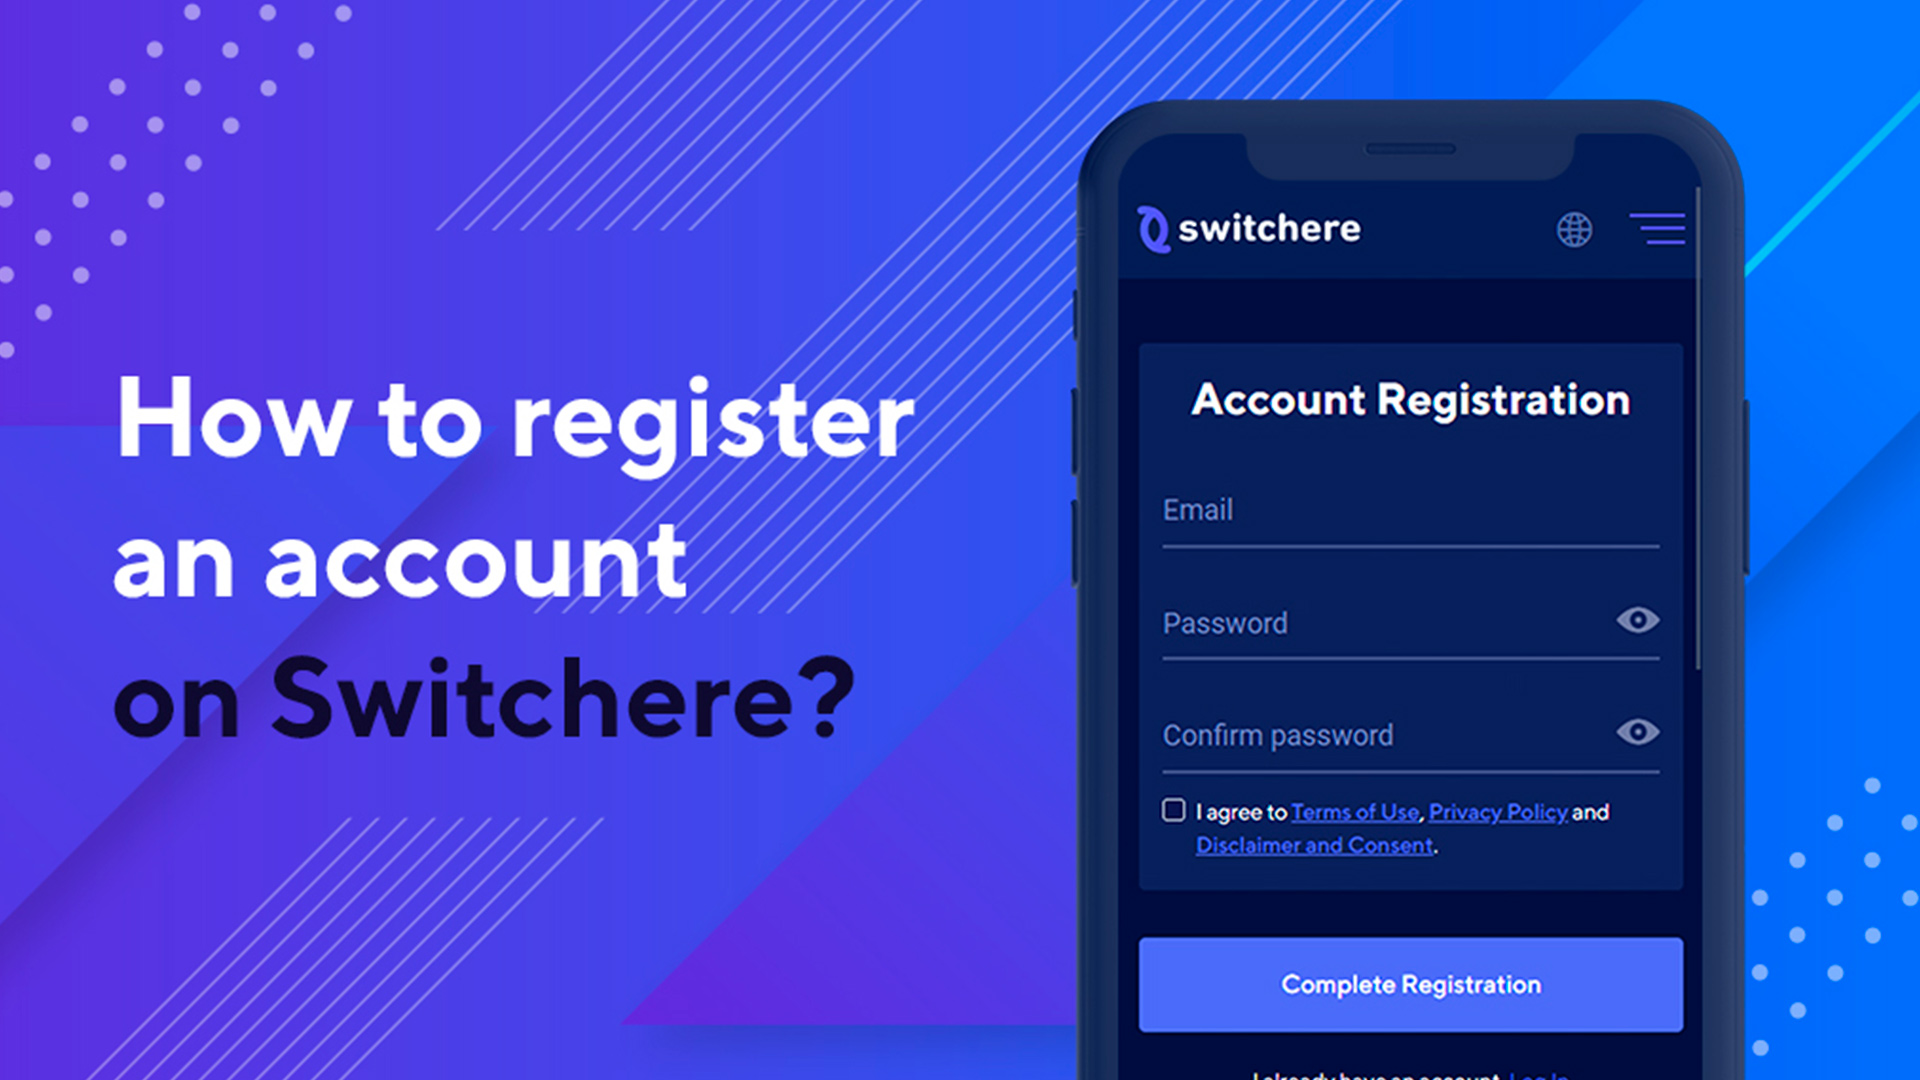 How to Register an Account on Switchere: Step-by-Step Tutorial